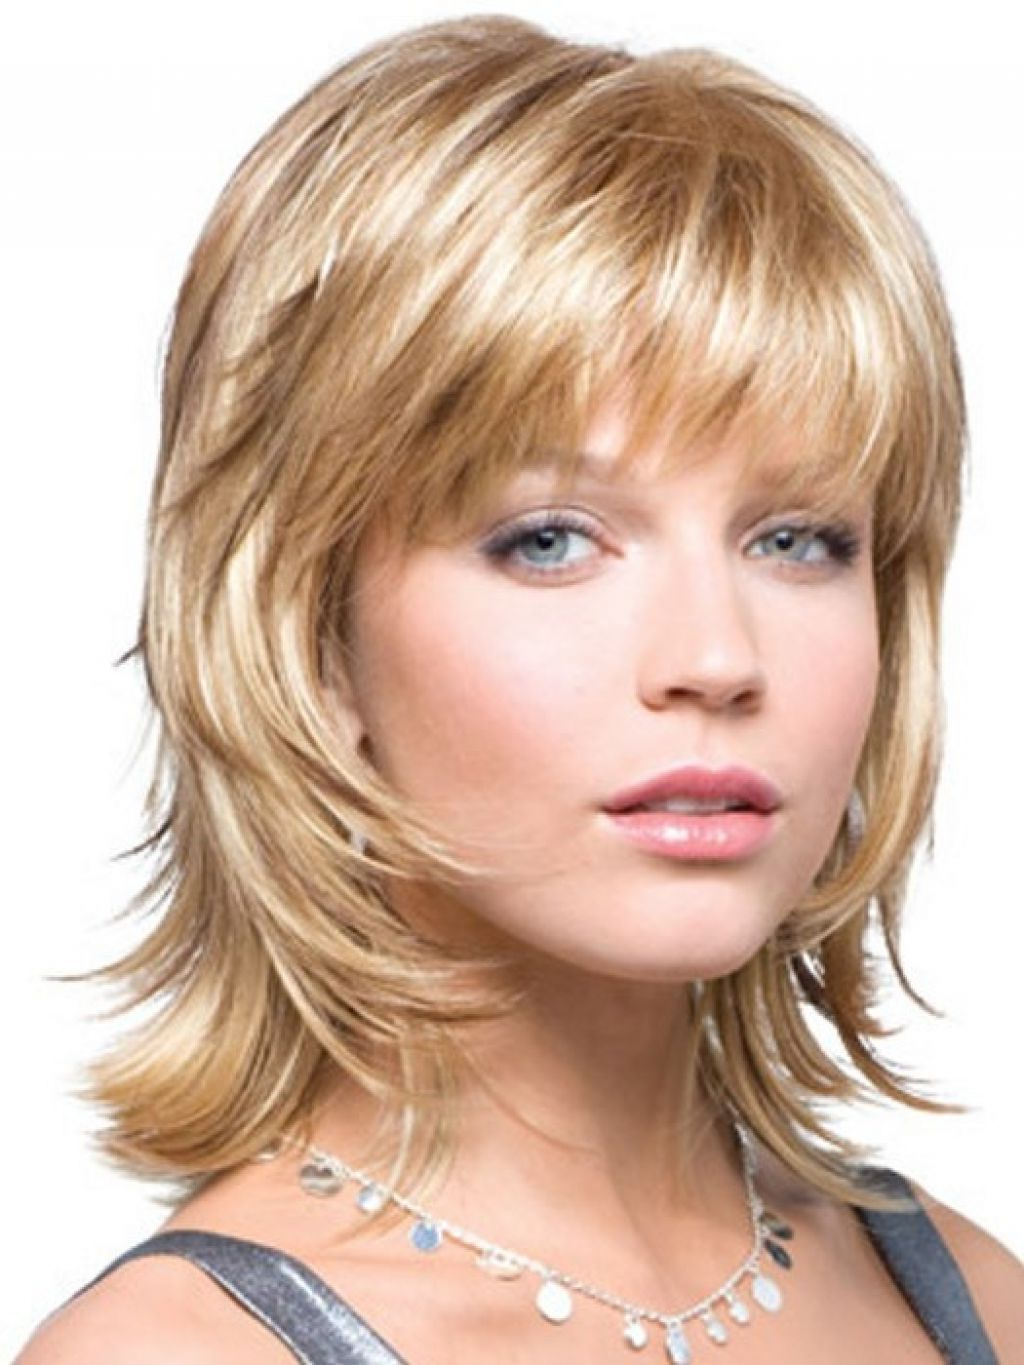 Trendy Shaggy Medium Haircuts For Medium Shaggy Hairstyle 20 With Medium Shaggy Hairstyle – Hairstyles (View 19 of 20)